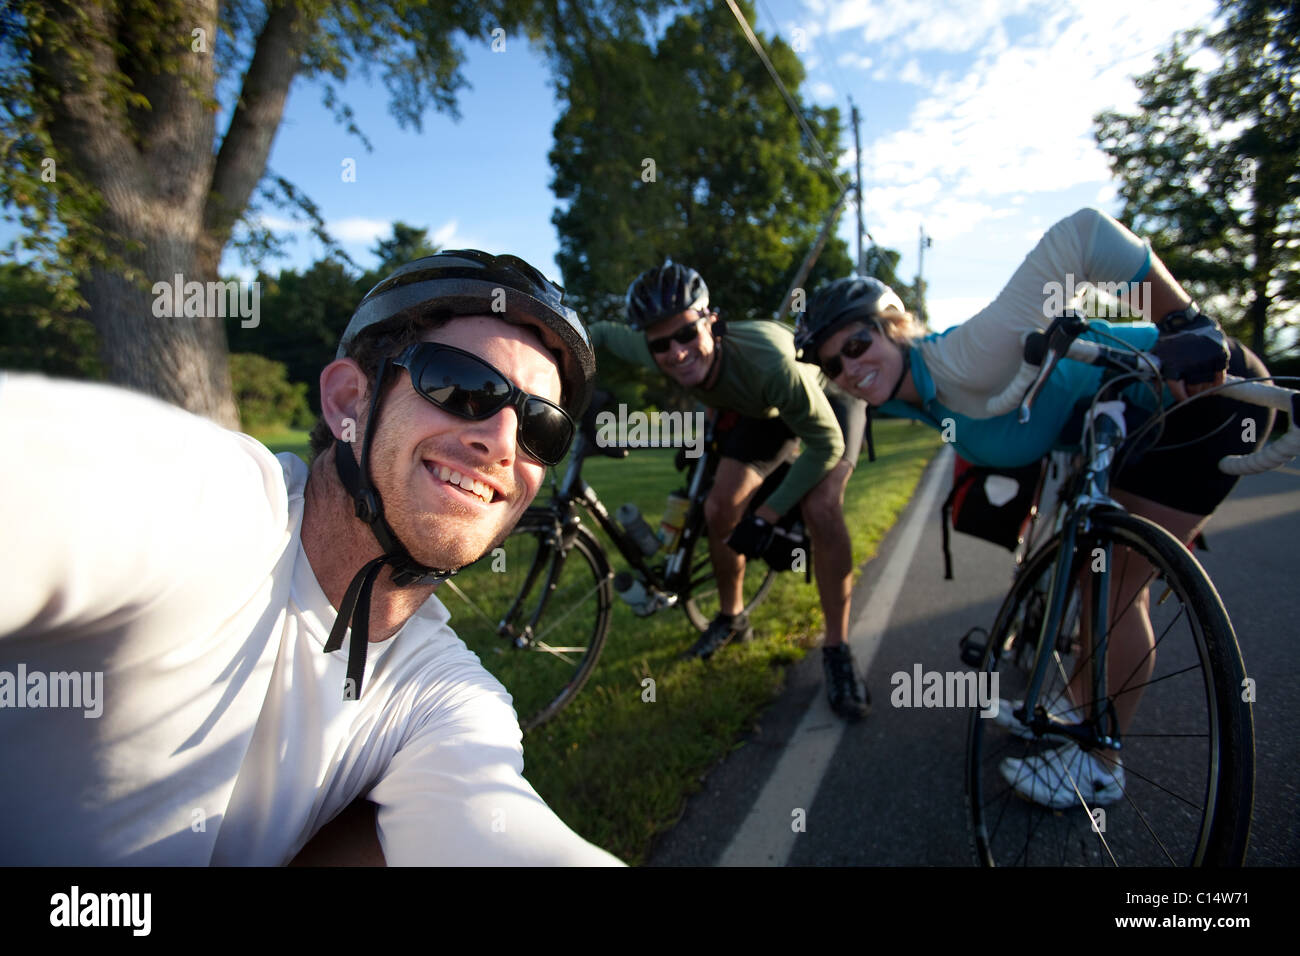 Three cyclists smile for a portrait during a bike ride in Monmouth, Maine. - Stock Image